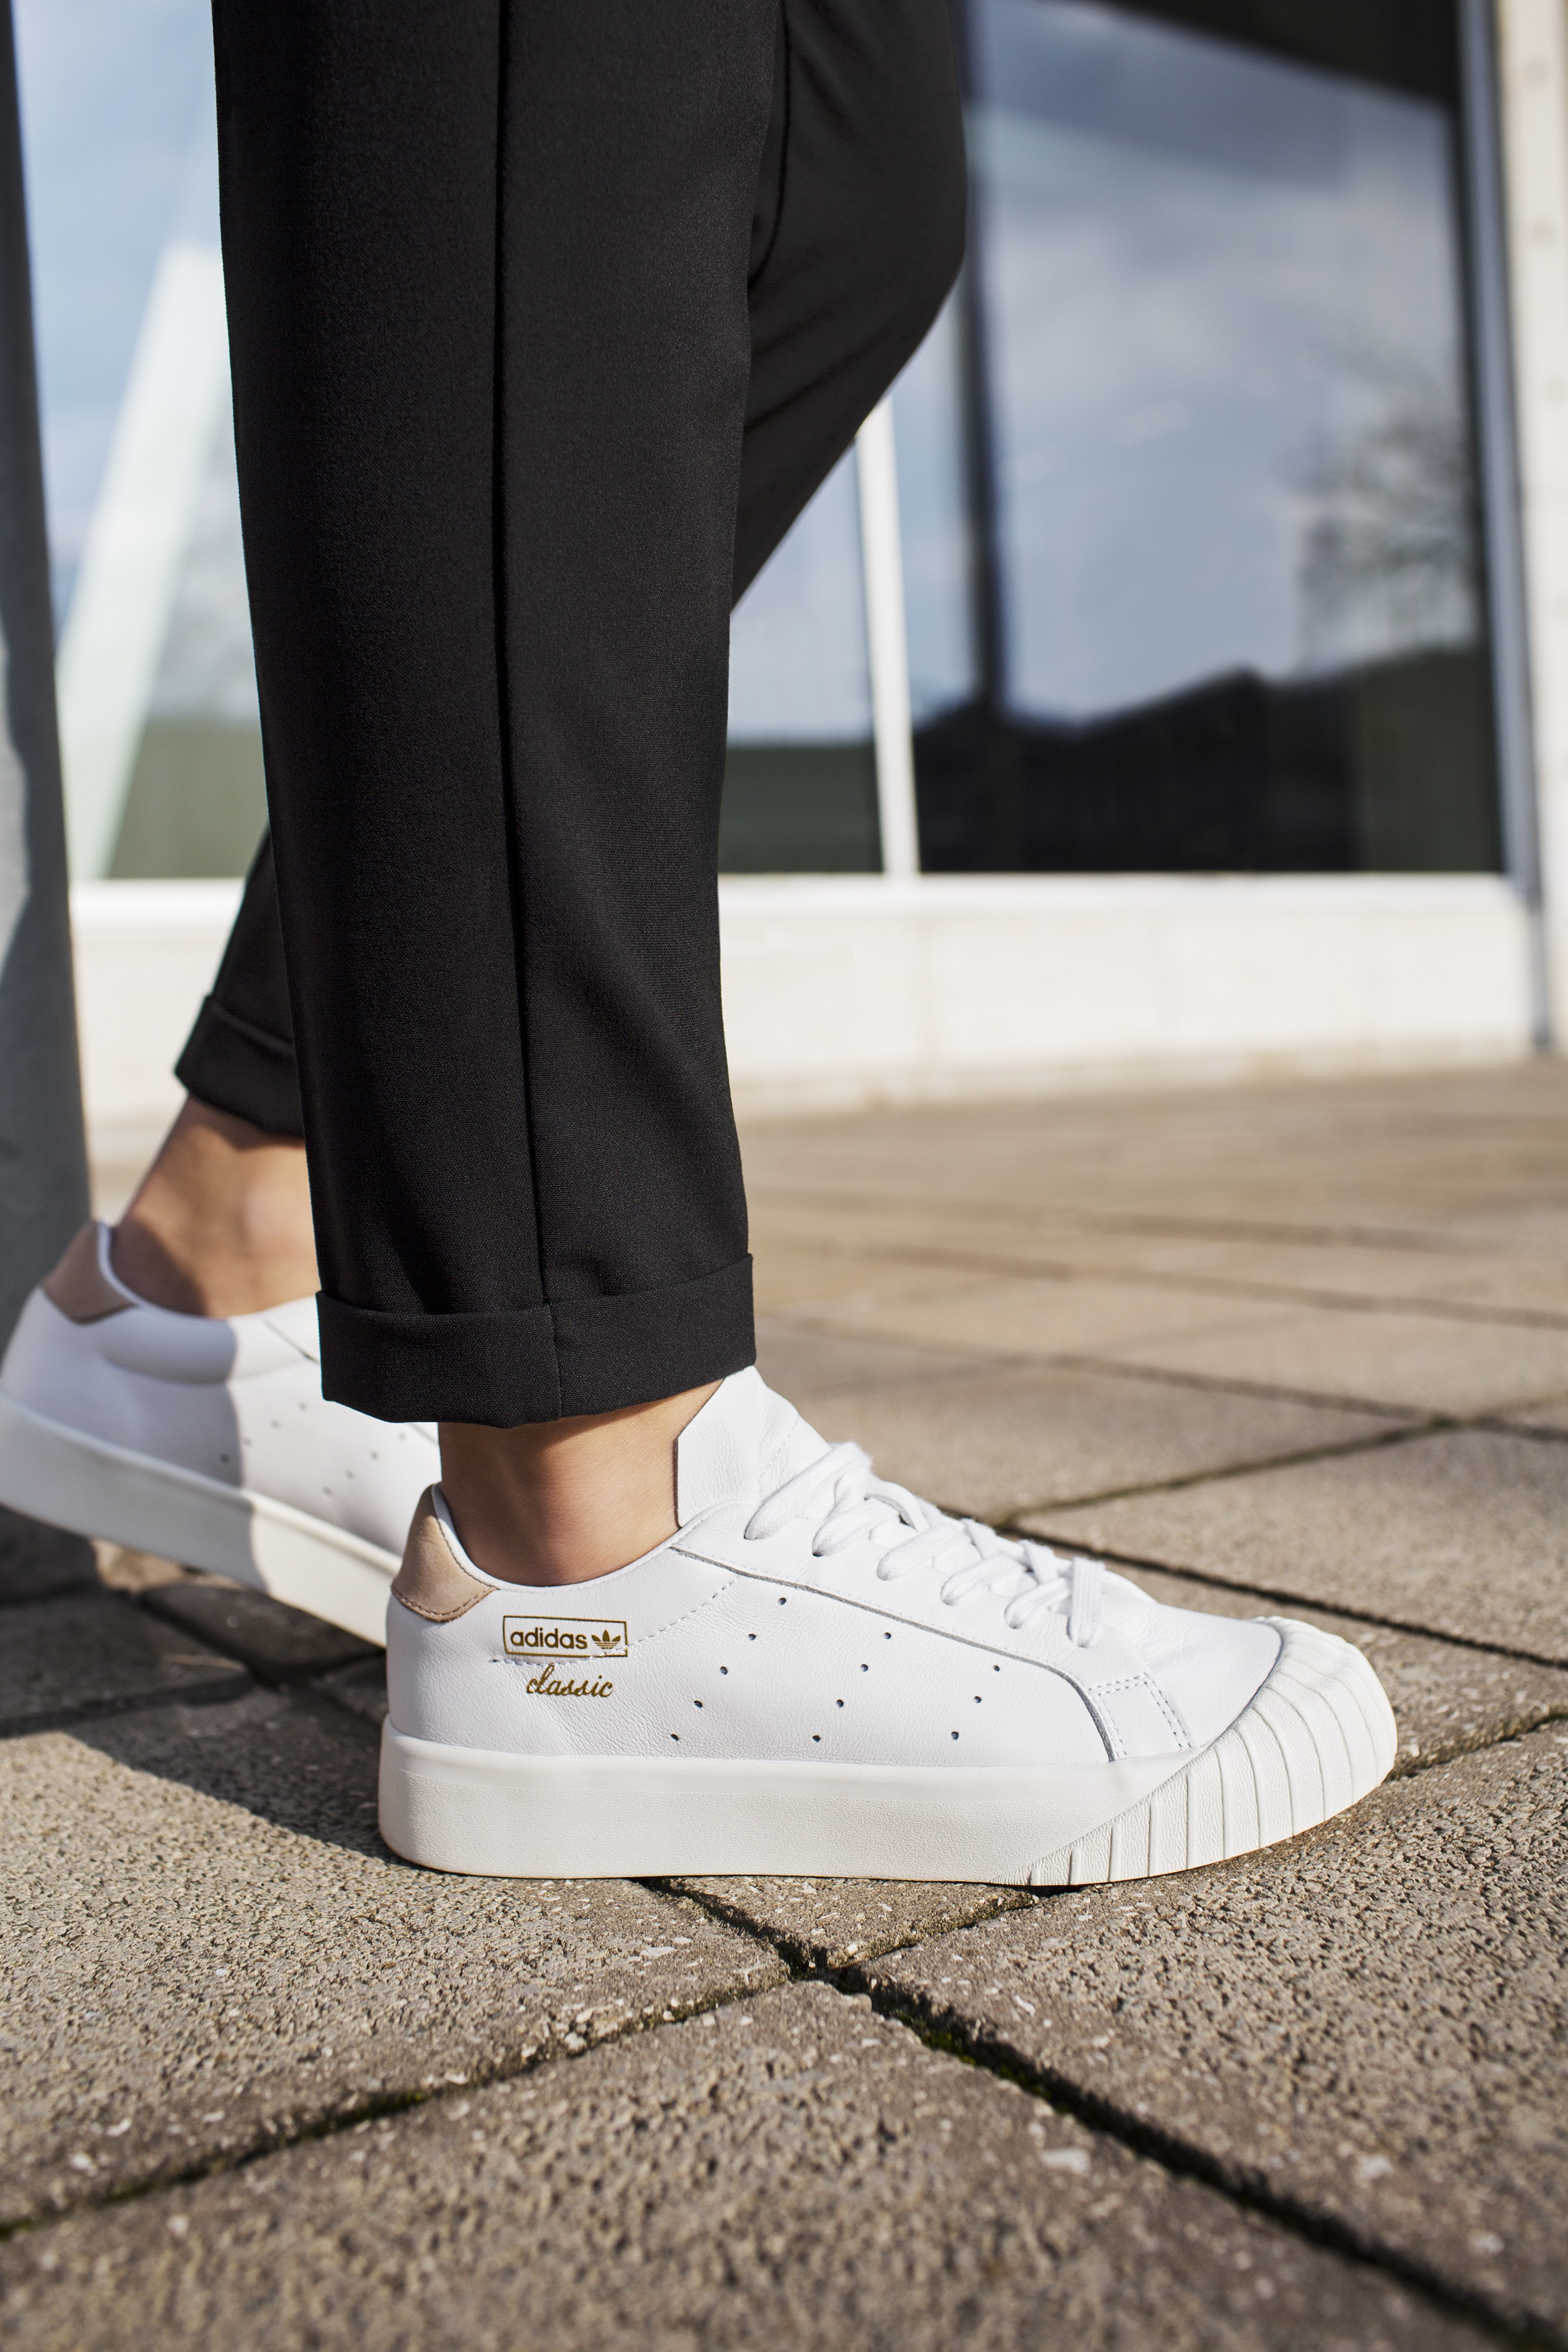 Meet the Newest Silhouette for Women: the adidas Everyn - WearTesters